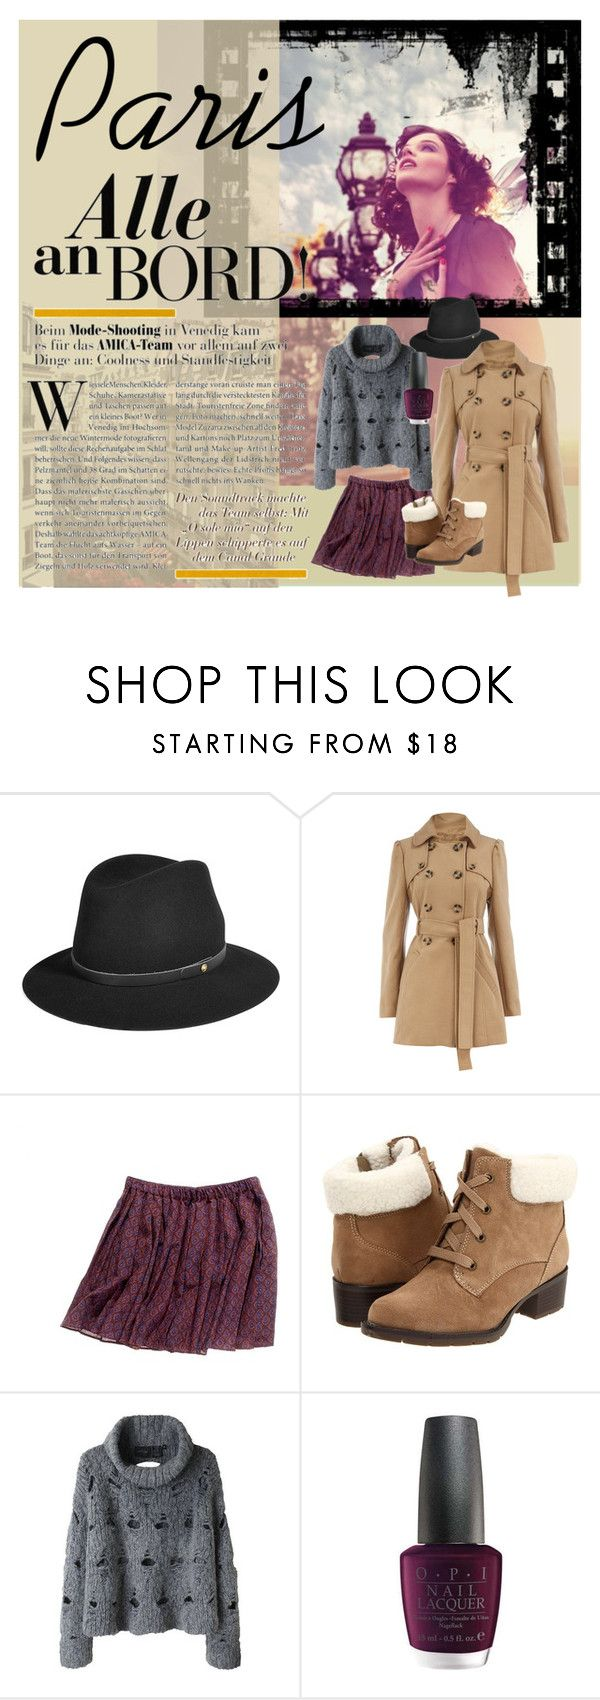 """""""Paris Winter"""" by bunnys1 ❤ liked on Polyvore featuring rag & bone, Dorothy Perkins, Madewell, Sporto, Rachel Comey, OPI, fedora hats, paris, sweater and trench coat"""